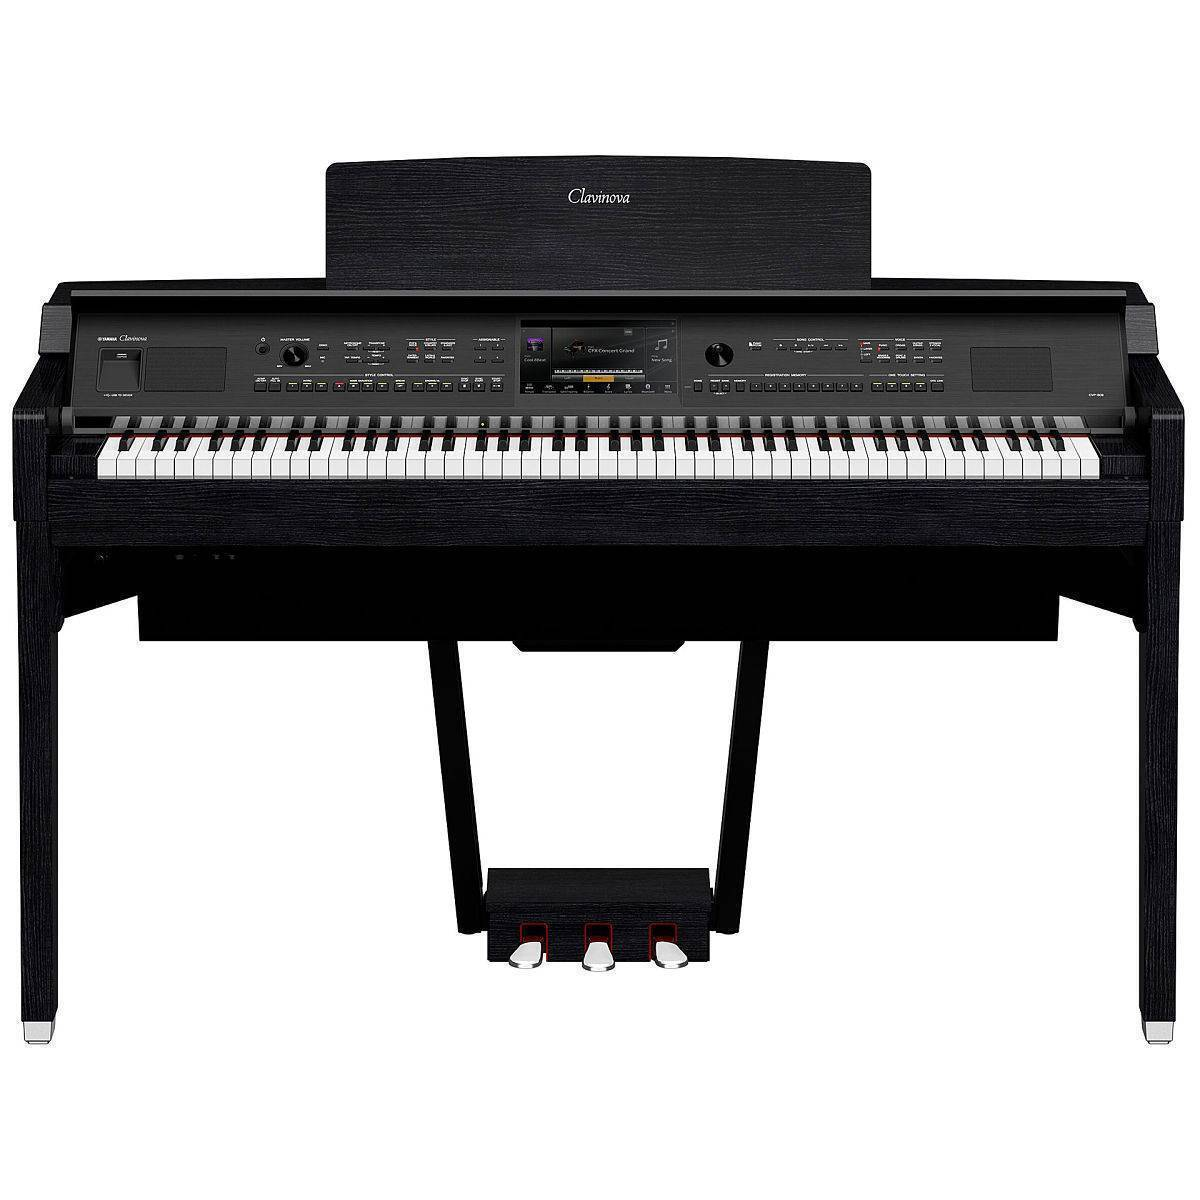 Piano Yamaha CVP-809 color Negro